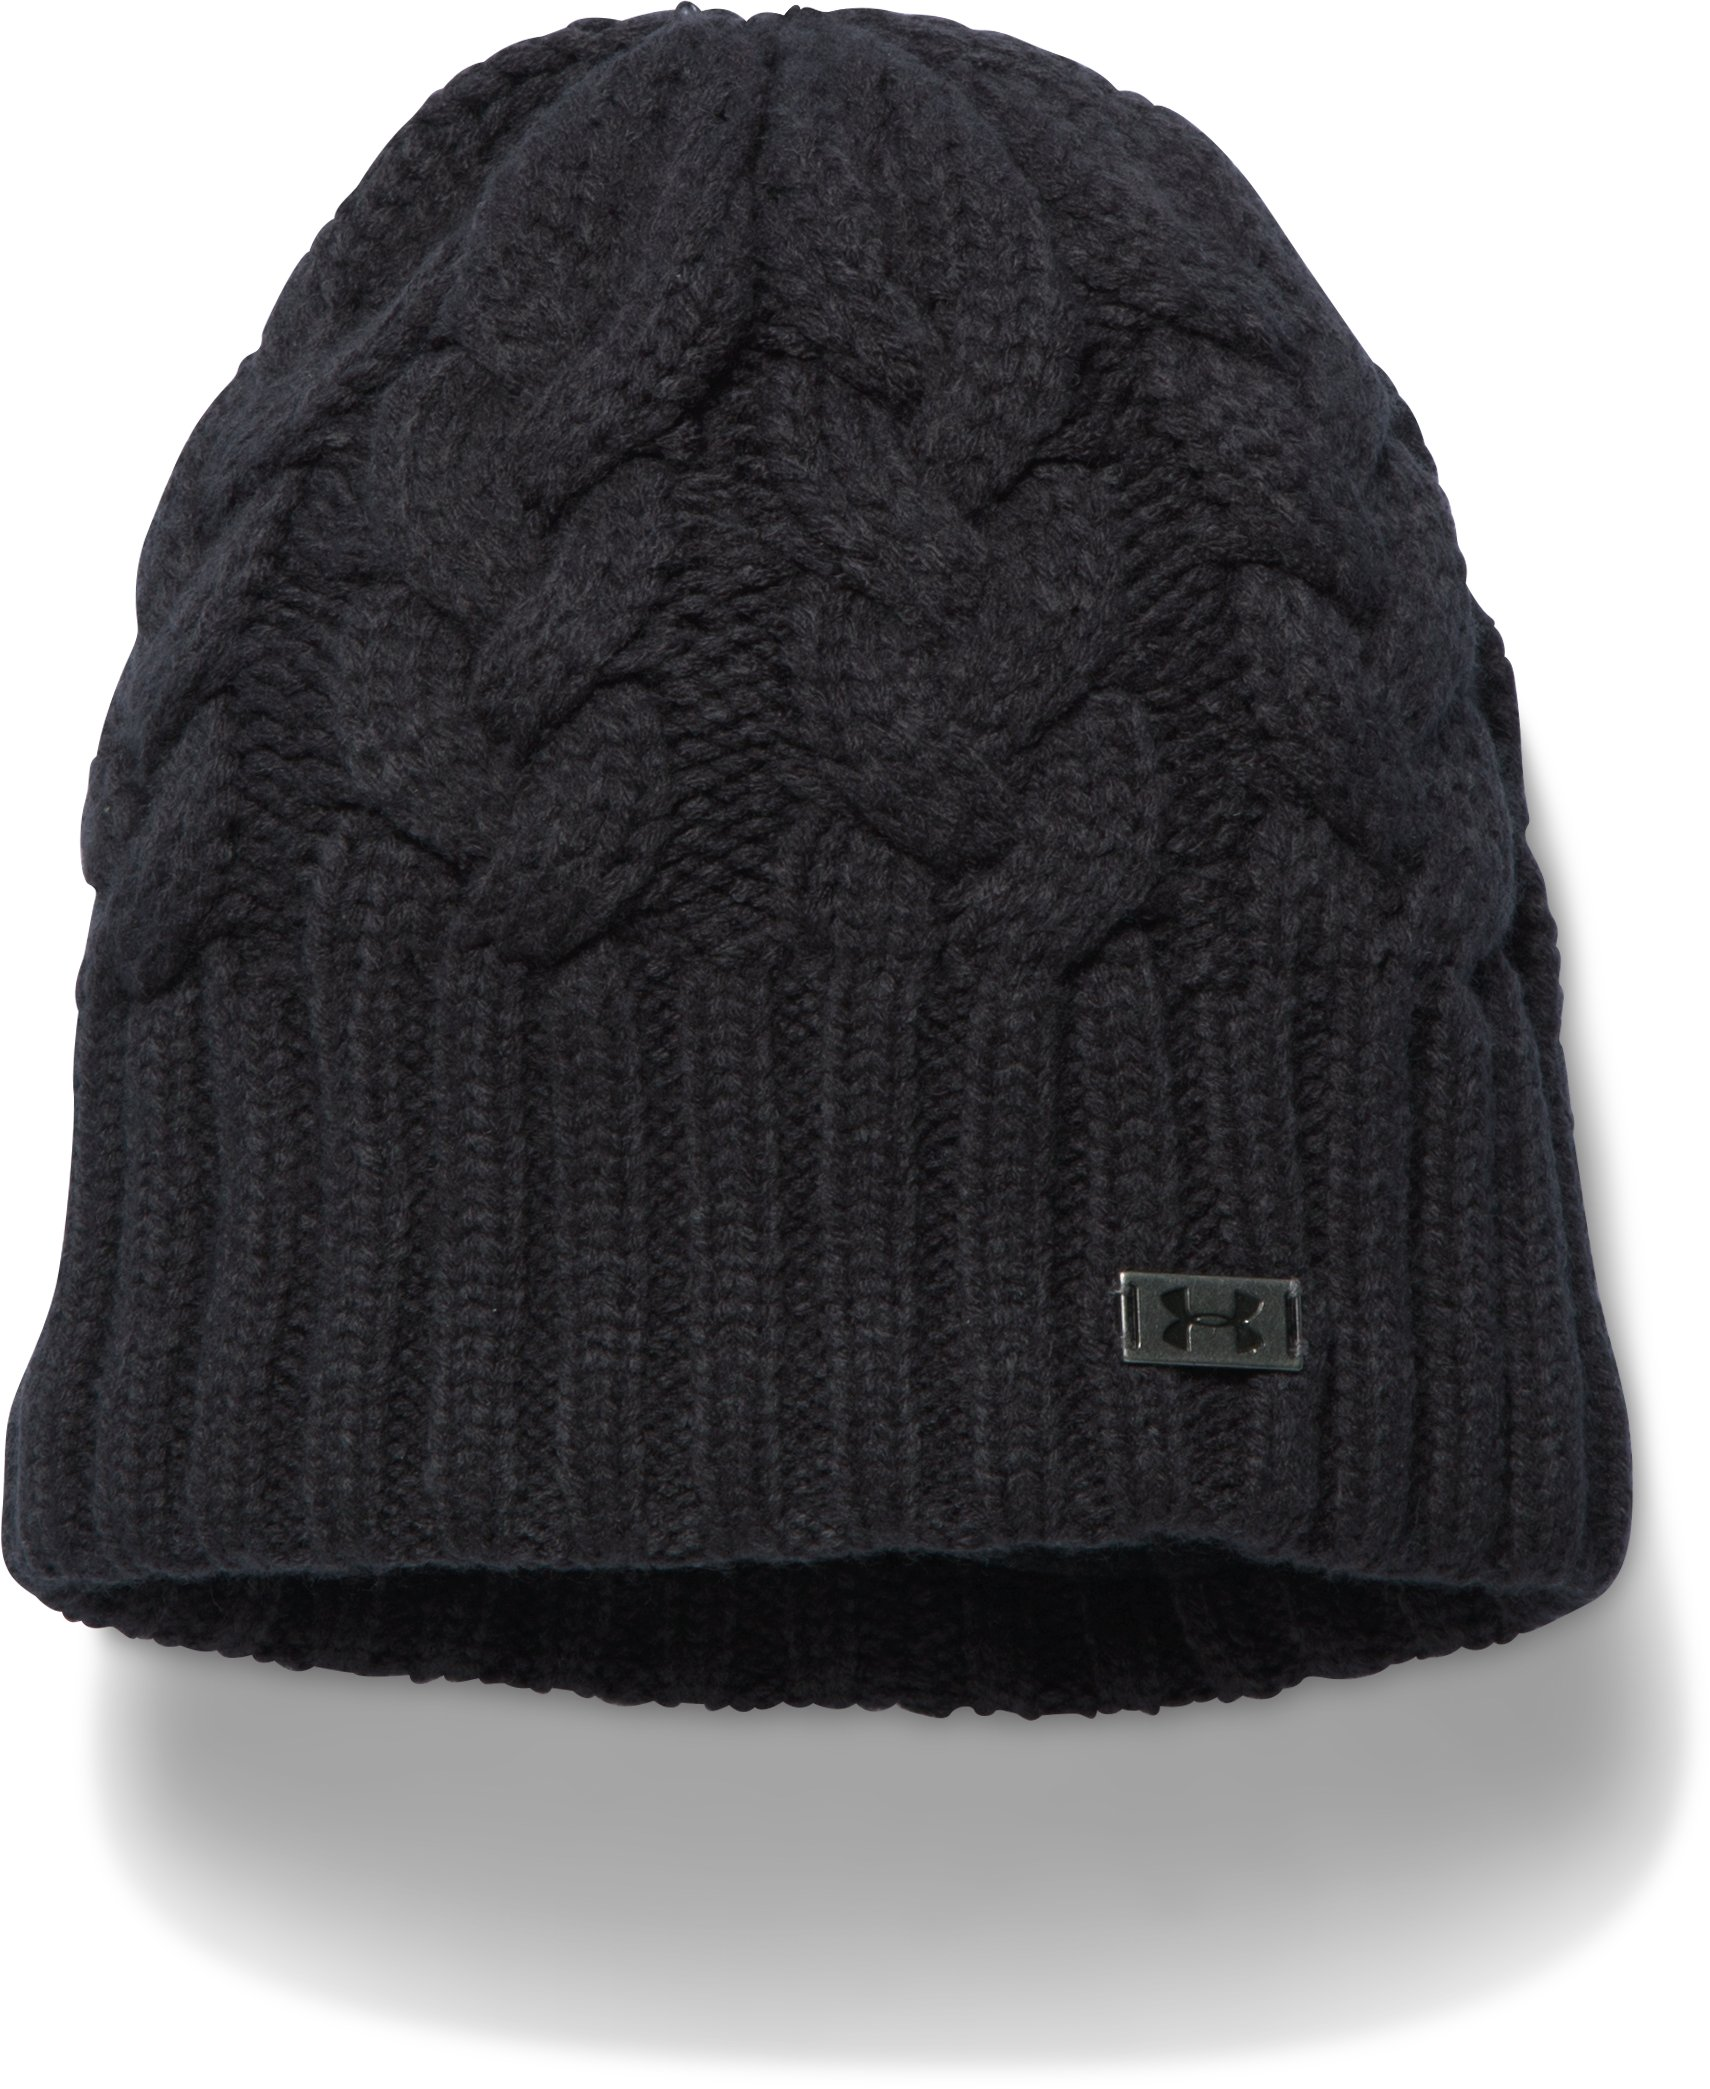 Women's UA Around Town Beanie, Black , zoomed image